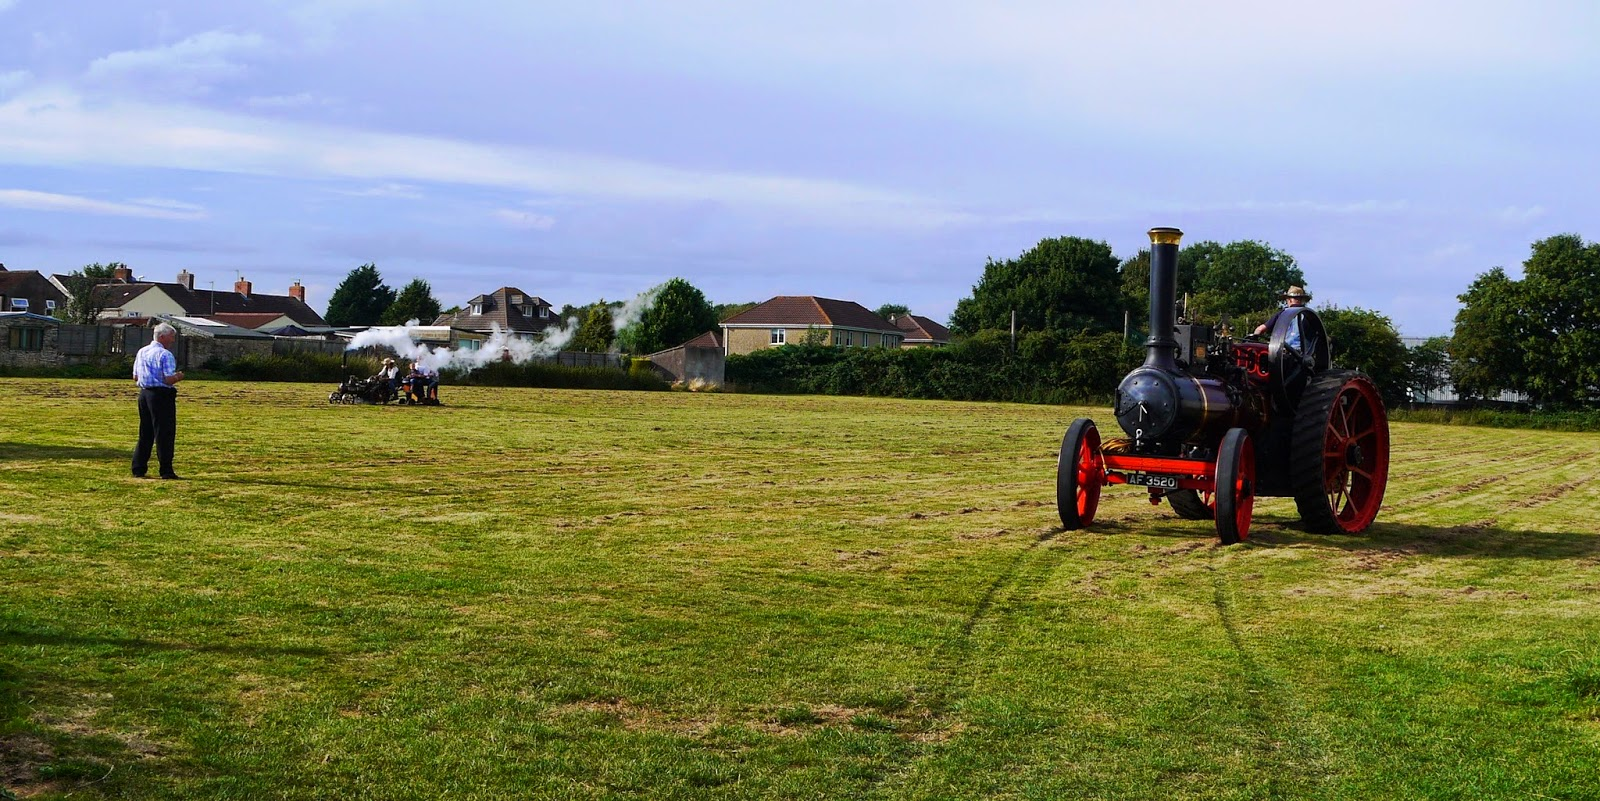 Steam engines in a field